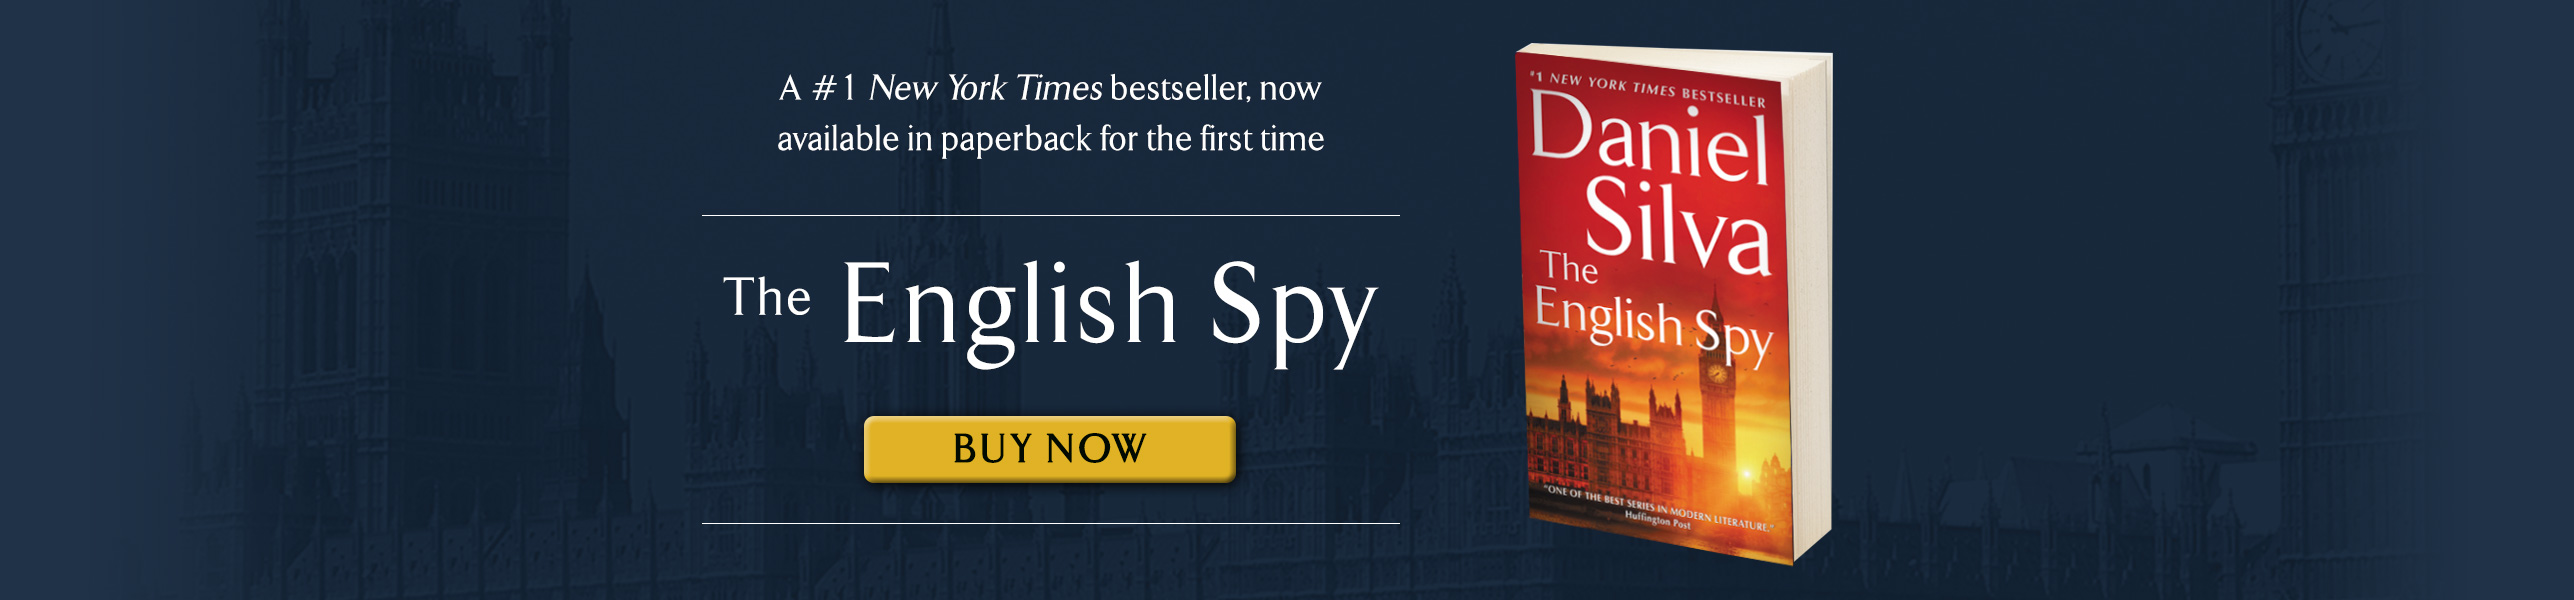 The English Spy, Daniel Silva's 15th installment of the Gabriel Allon series, is a #1 New York Times bestseller